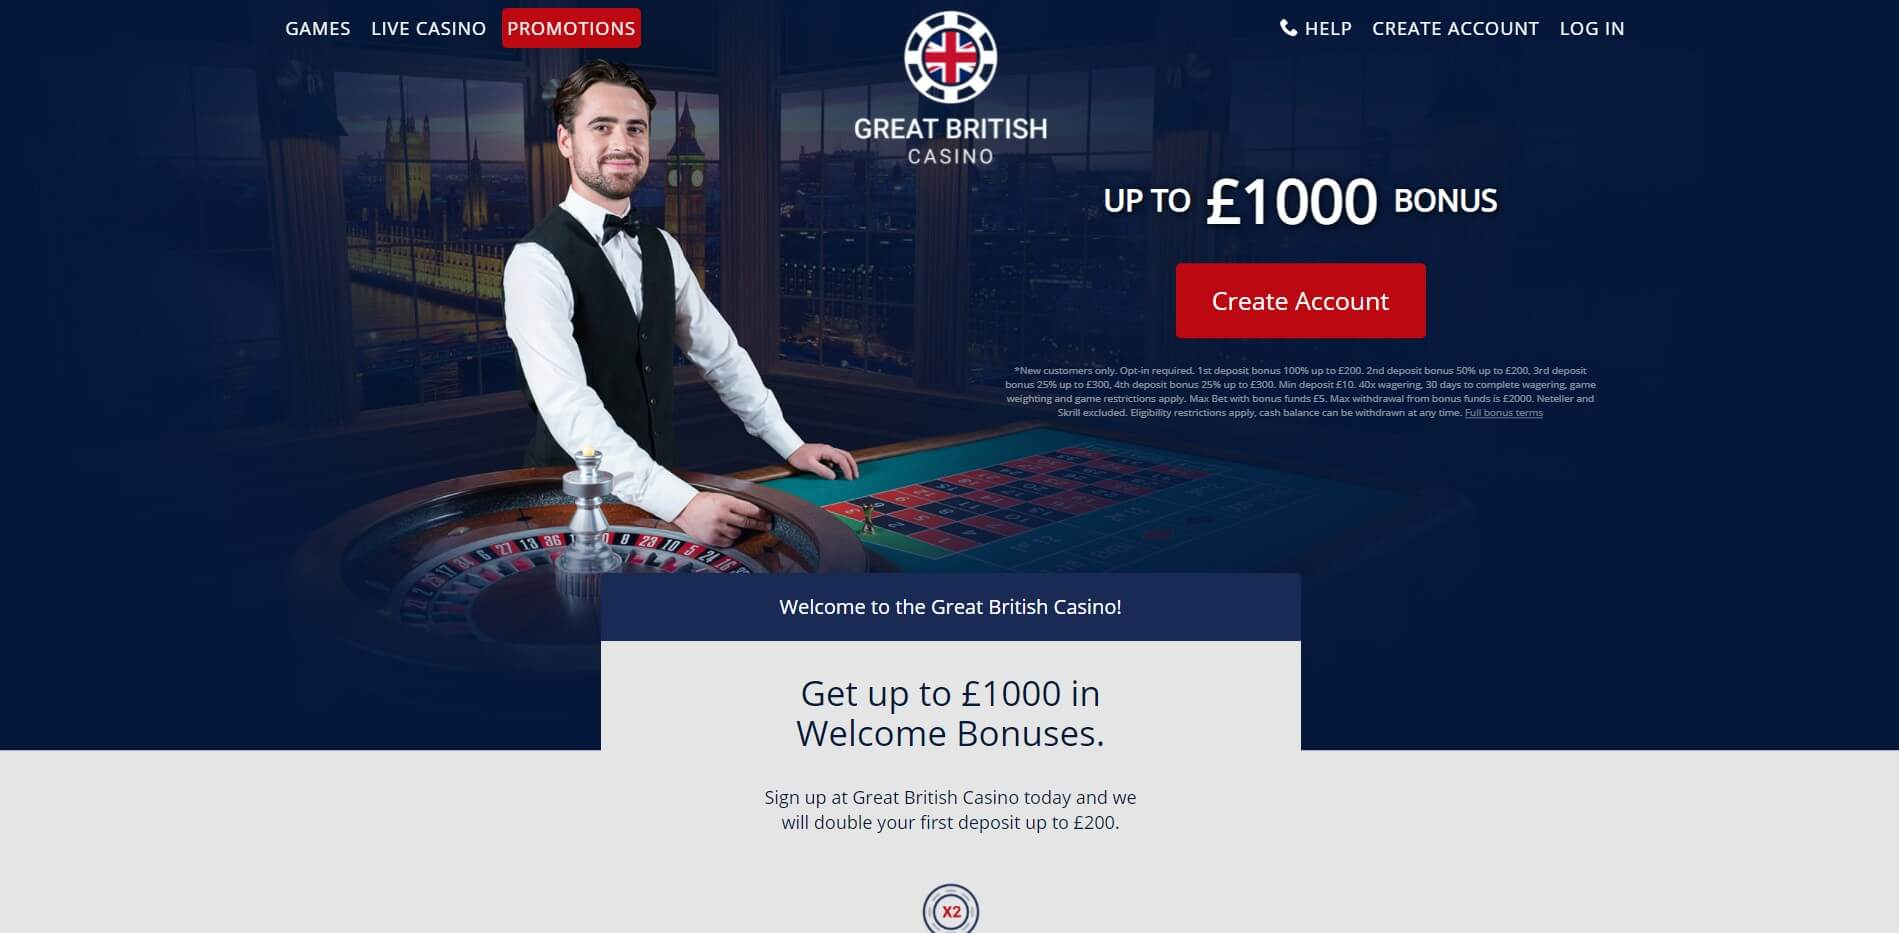 Promotions at Great British Casino